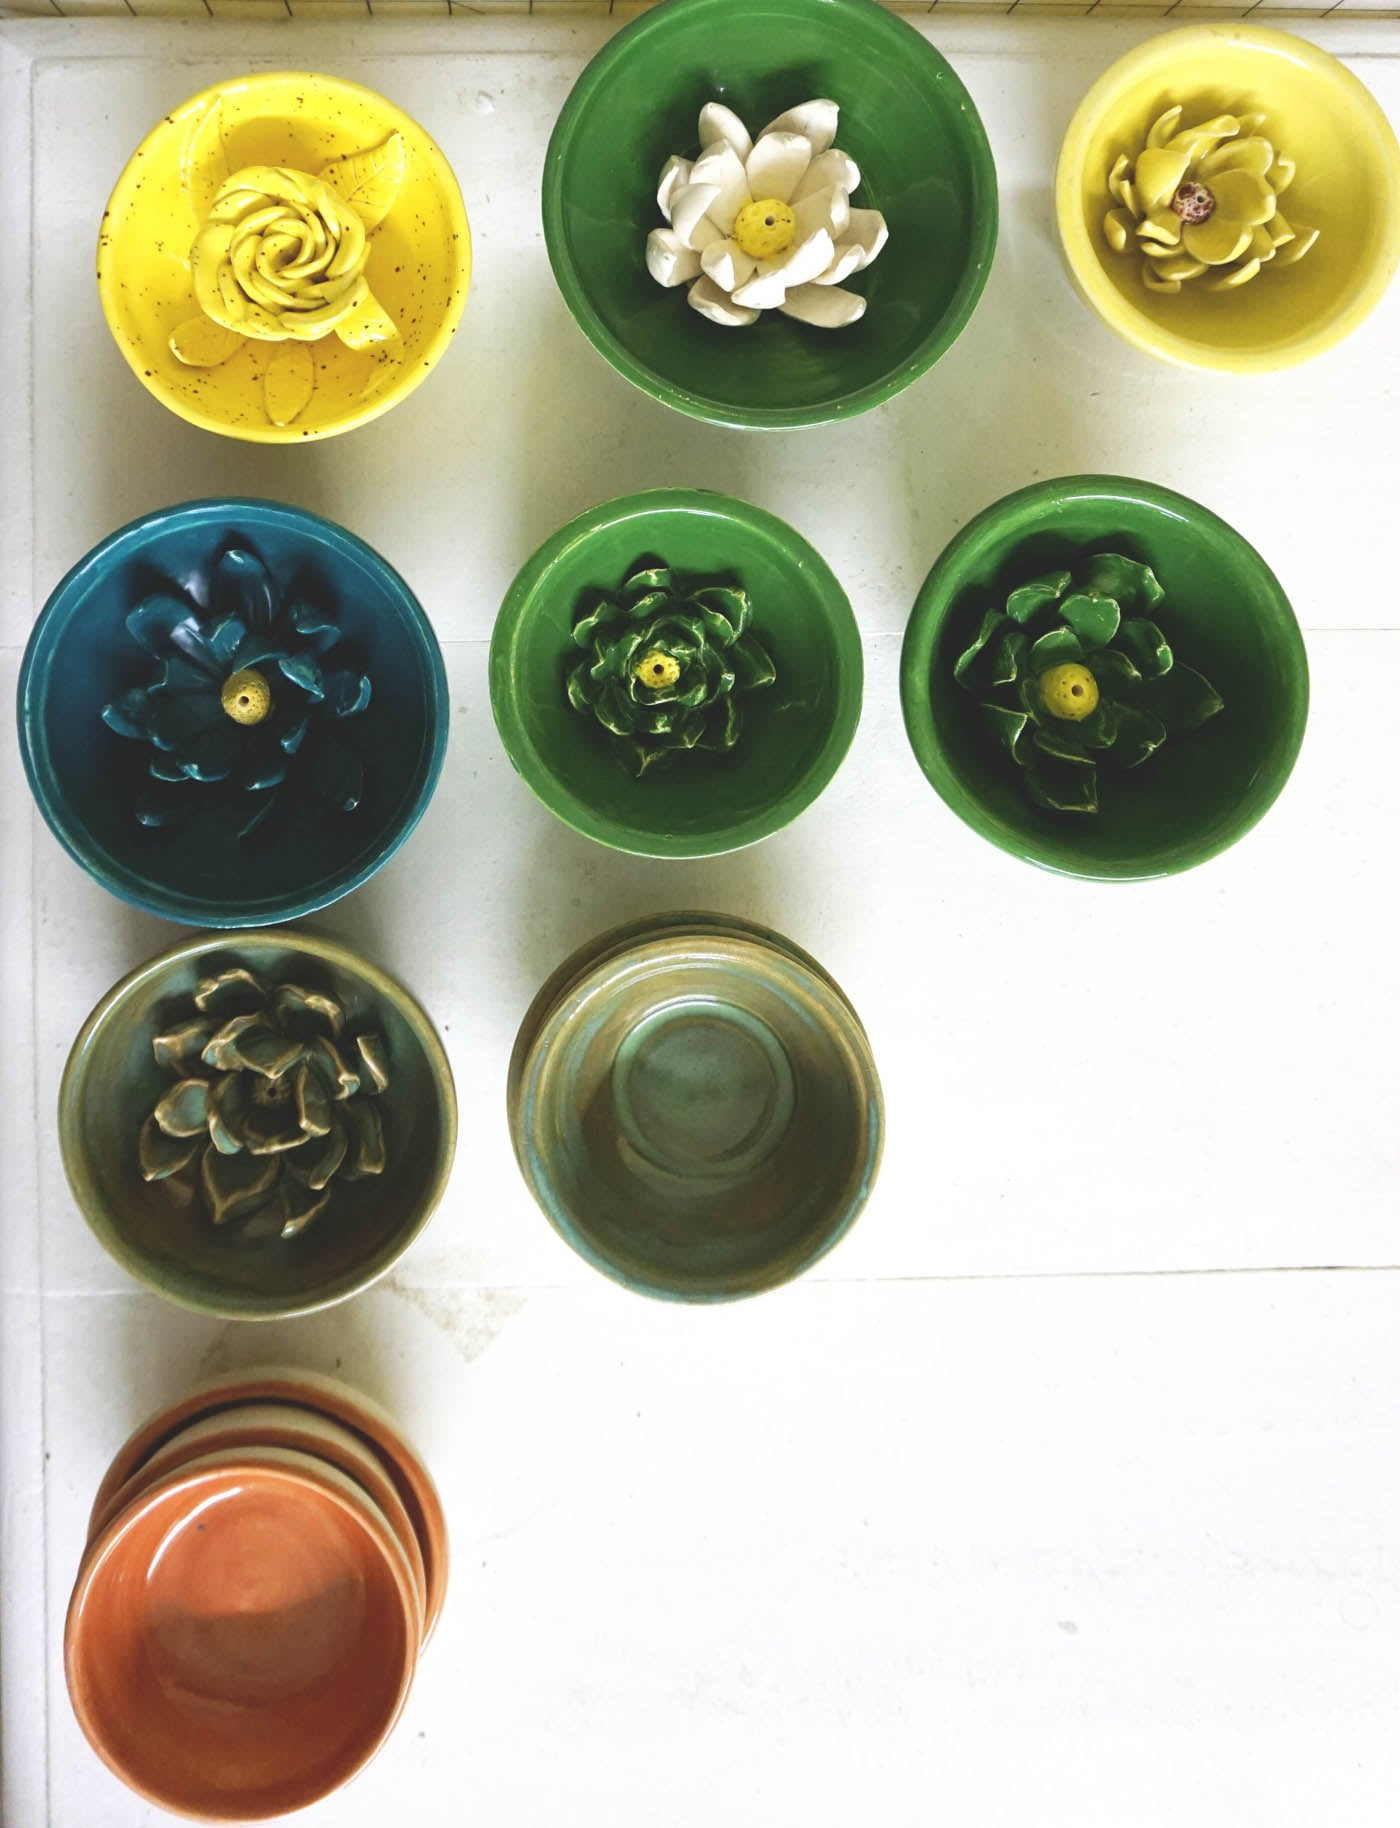 Pottery lined up in rows in multiple colors, photo is taken looking straight down.